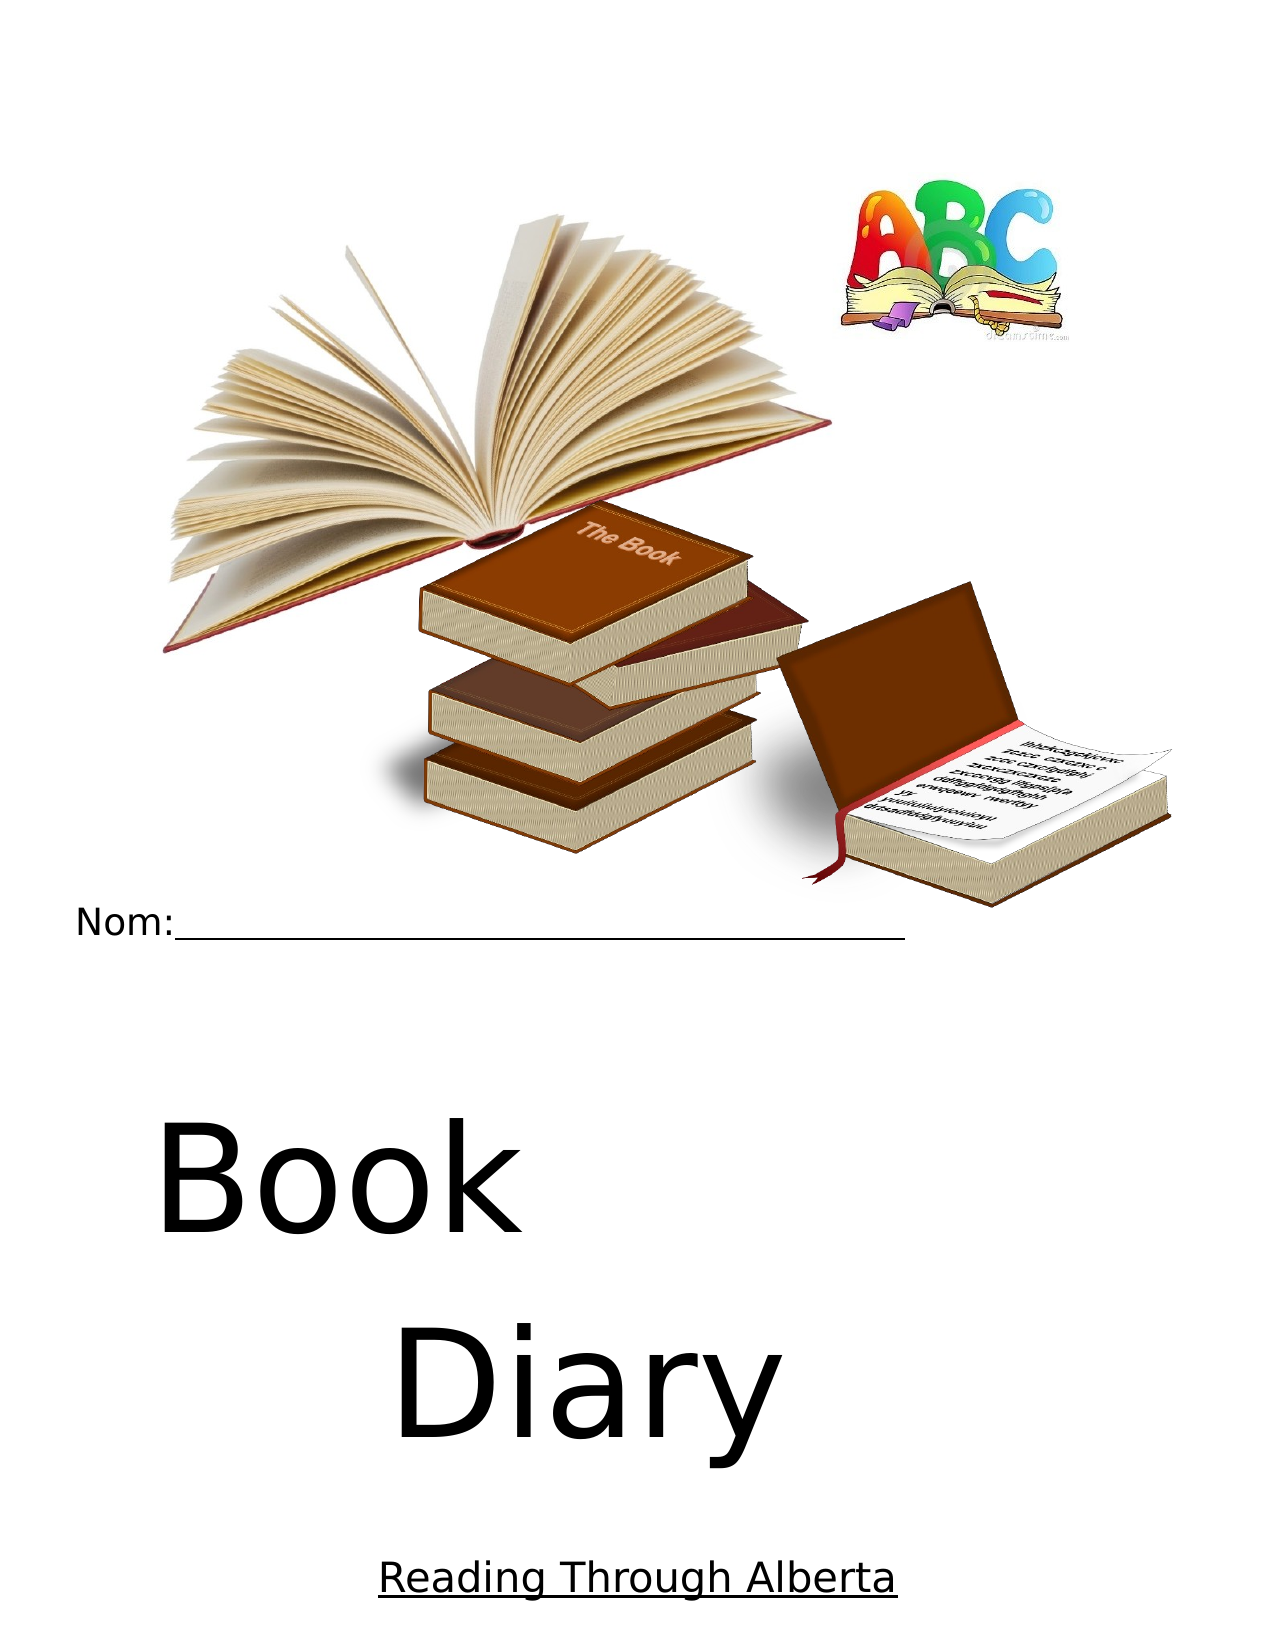 Book diary Resource Preview